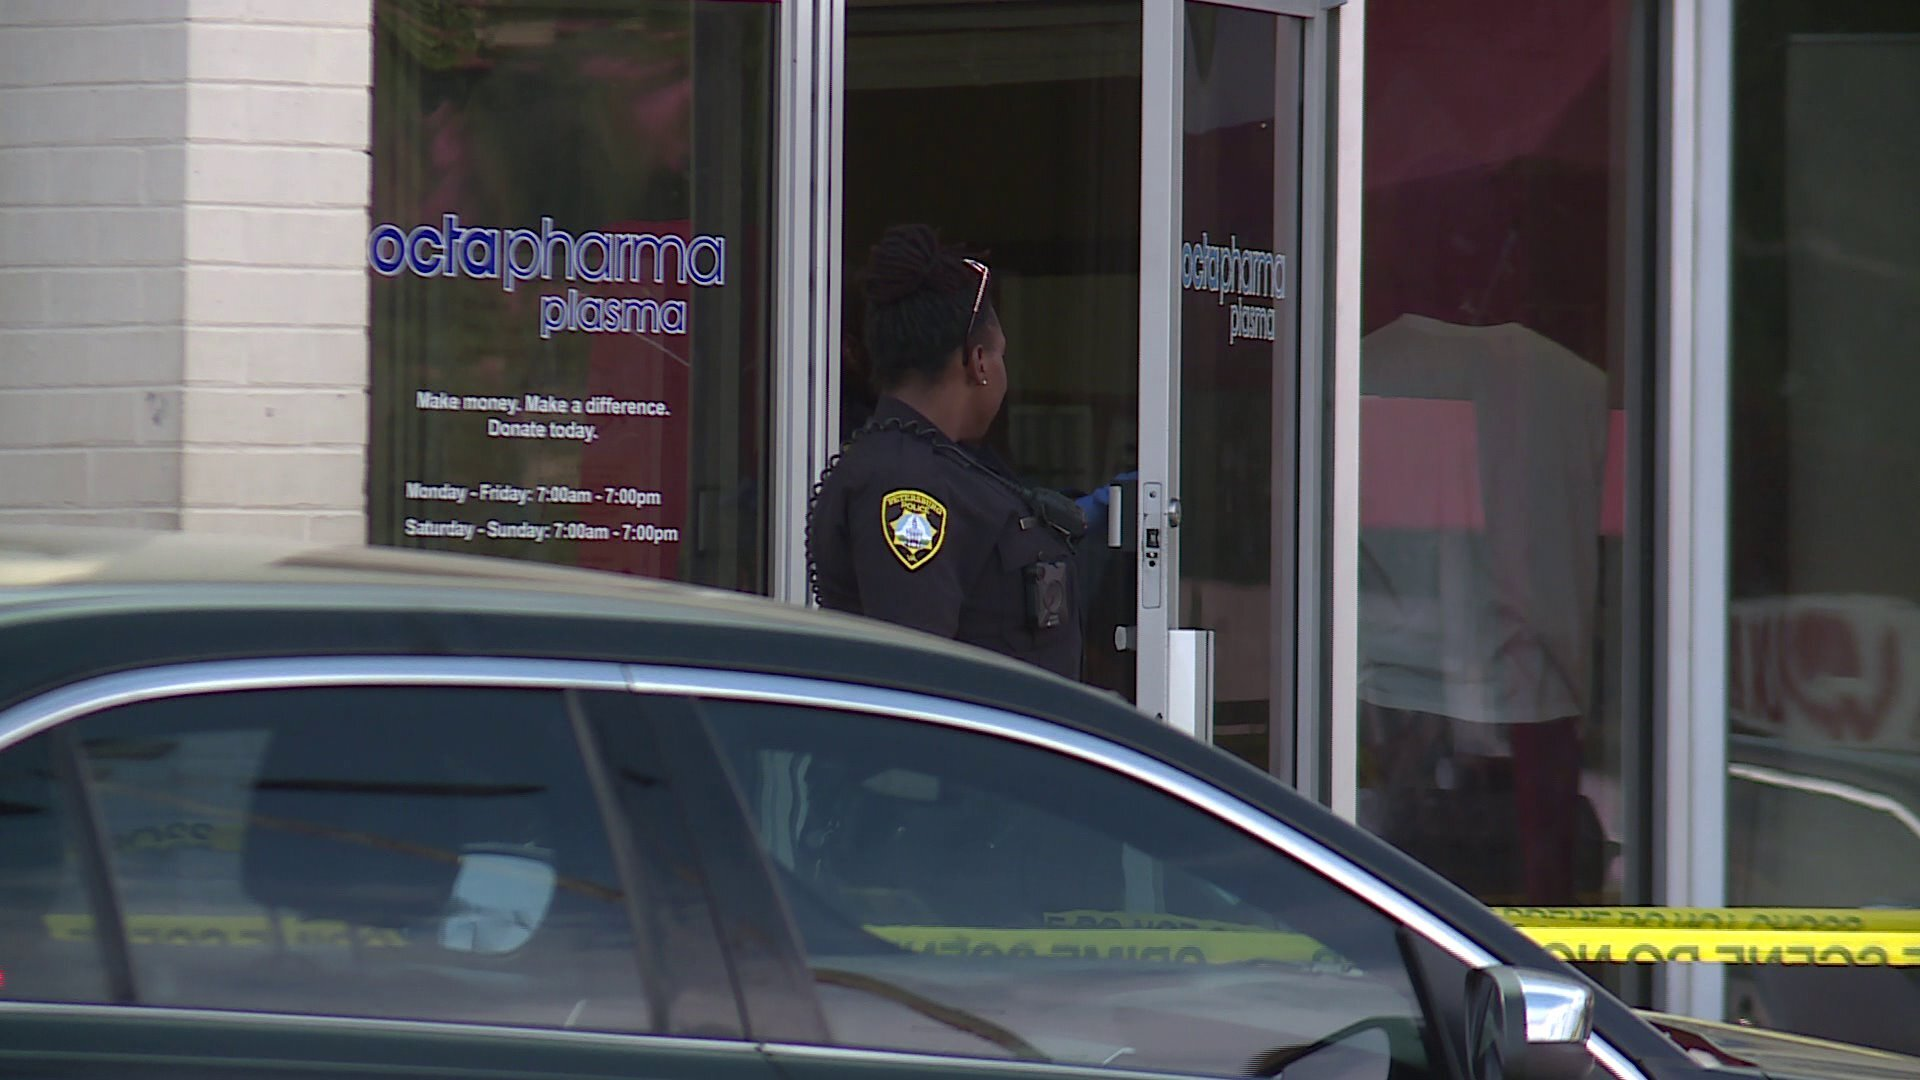 Photos: 3 stabbed at Petersburg plasma center; police search suspect'shome